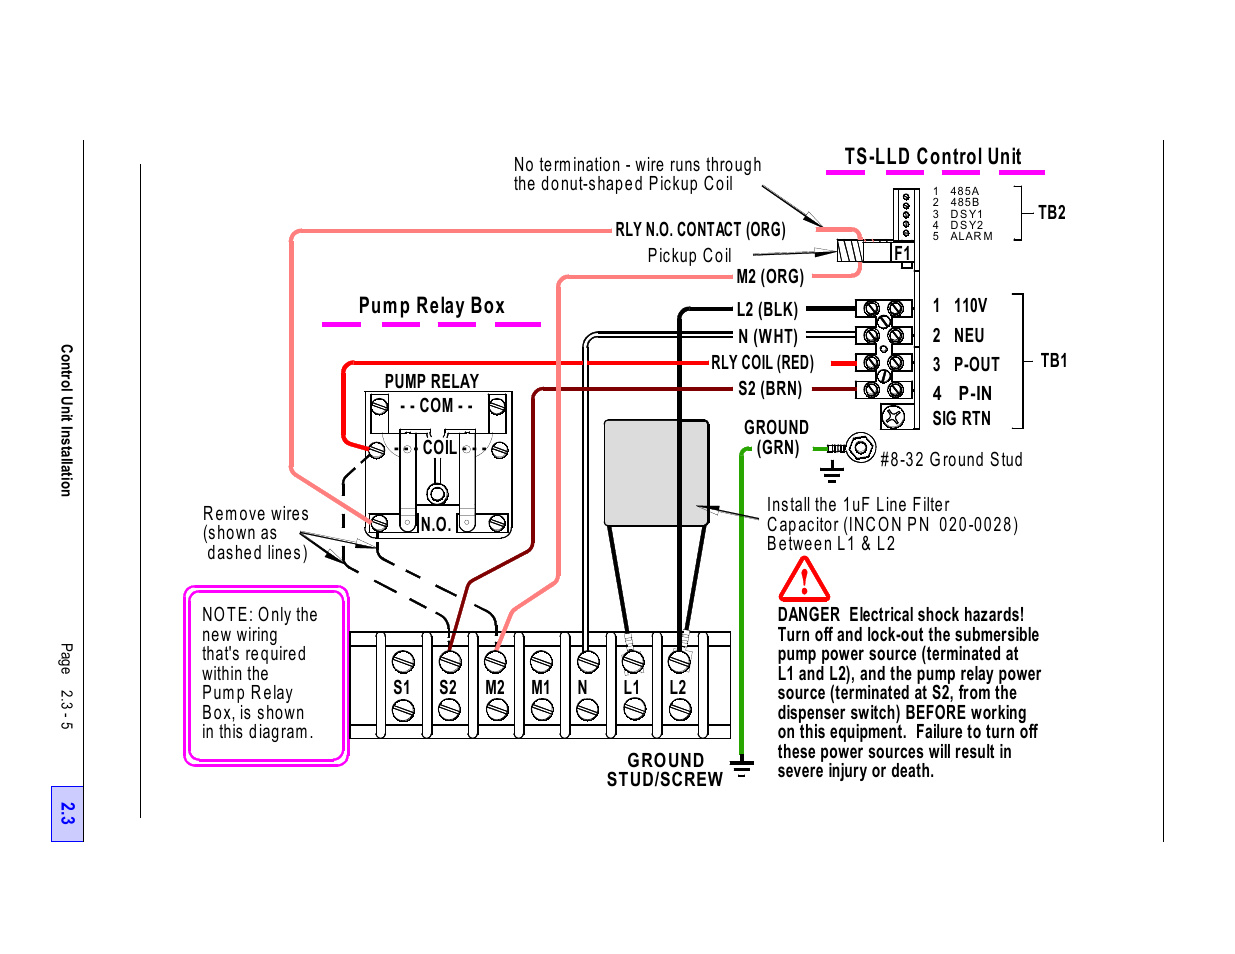 S2 System Wiring Diagram Library Porsche 944s2 Diagrams Figure 23 4 Typical Single Phase 240 Vac Pump Relay Box Control Unit